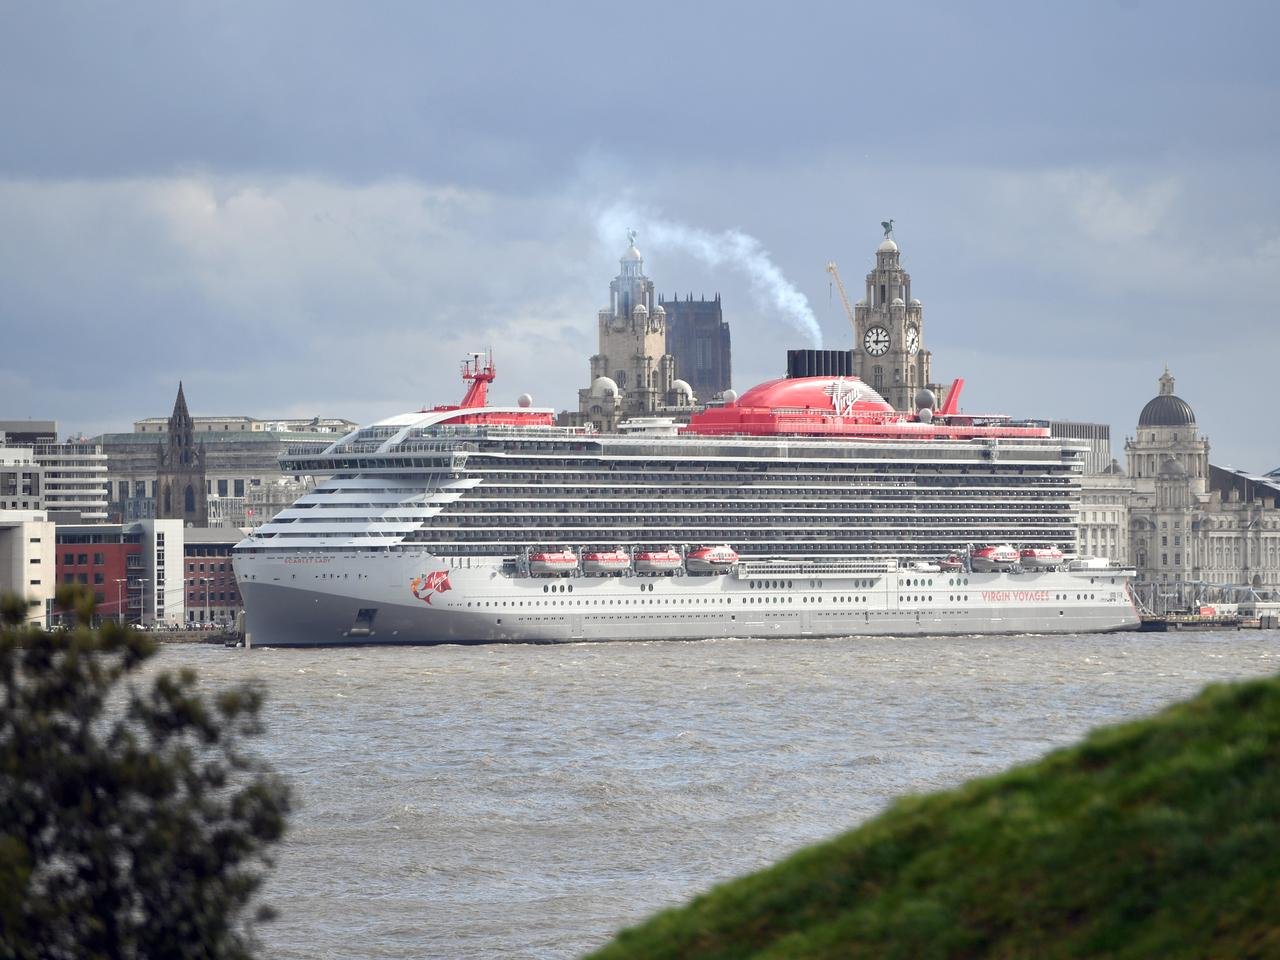 Virgin Voyages 'Scarlet Lady' Cruise Ship Arrives at Liverpool for Star-Studded Extravaganza